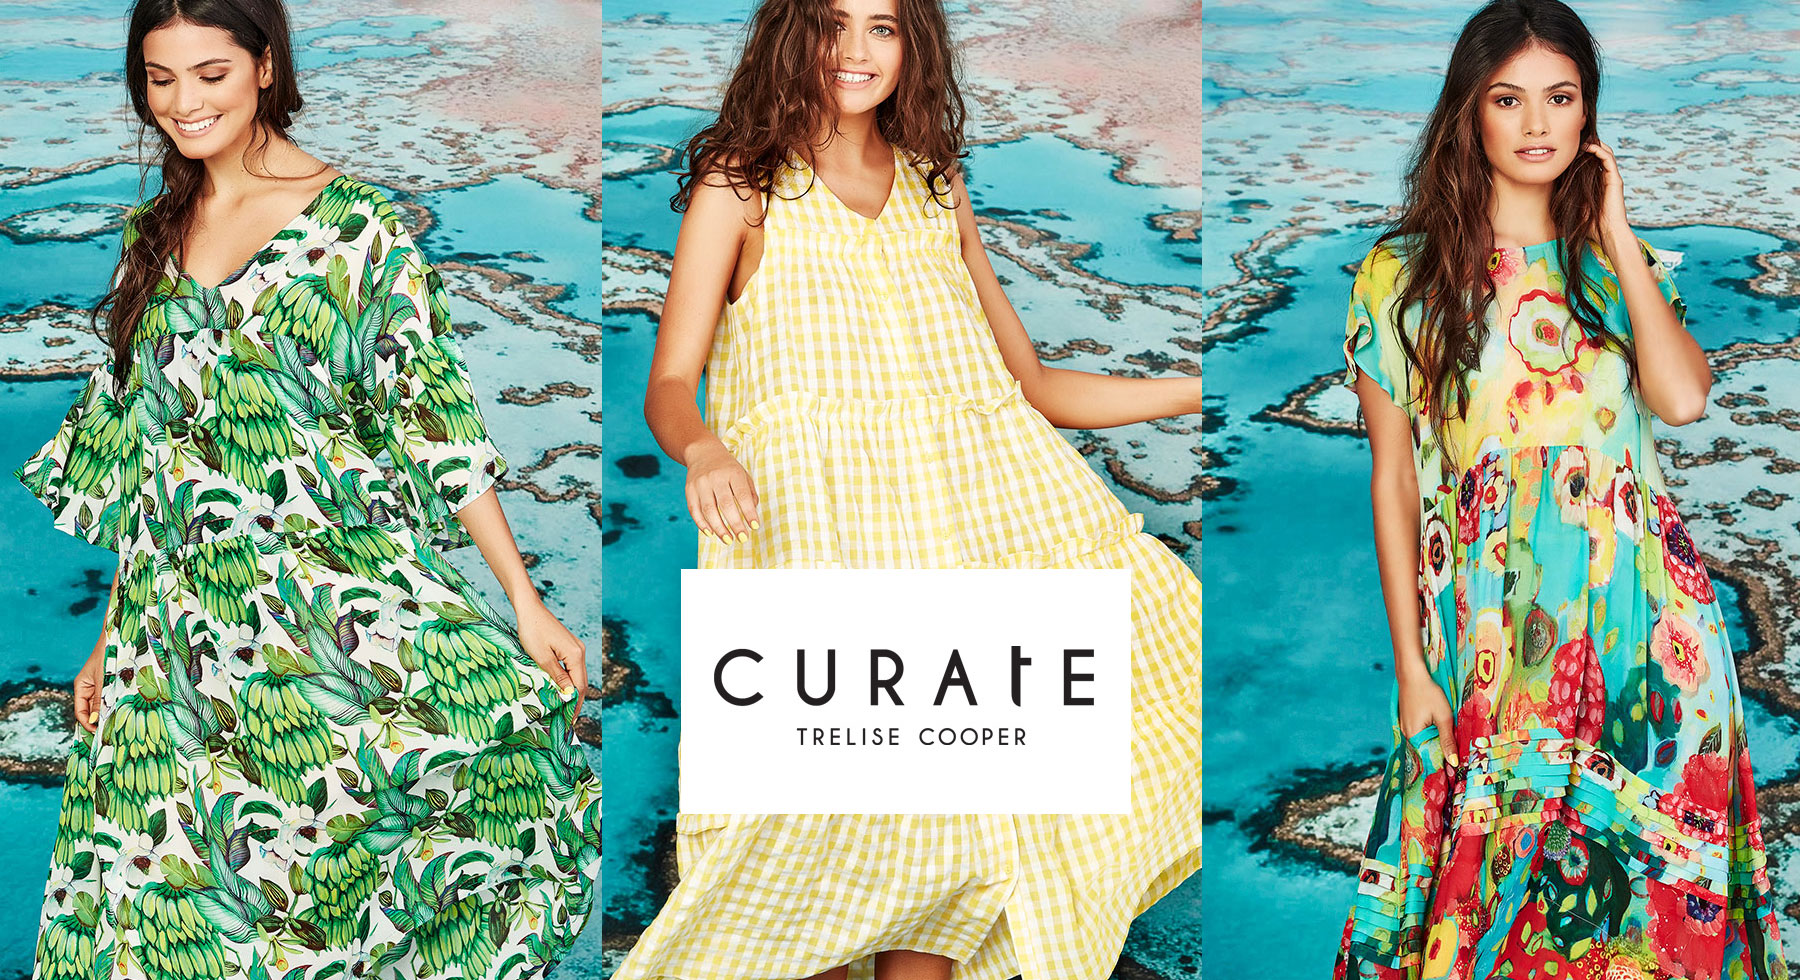 Curate by Trelise Cooper Auckland stockists Frontline Designer Clothing